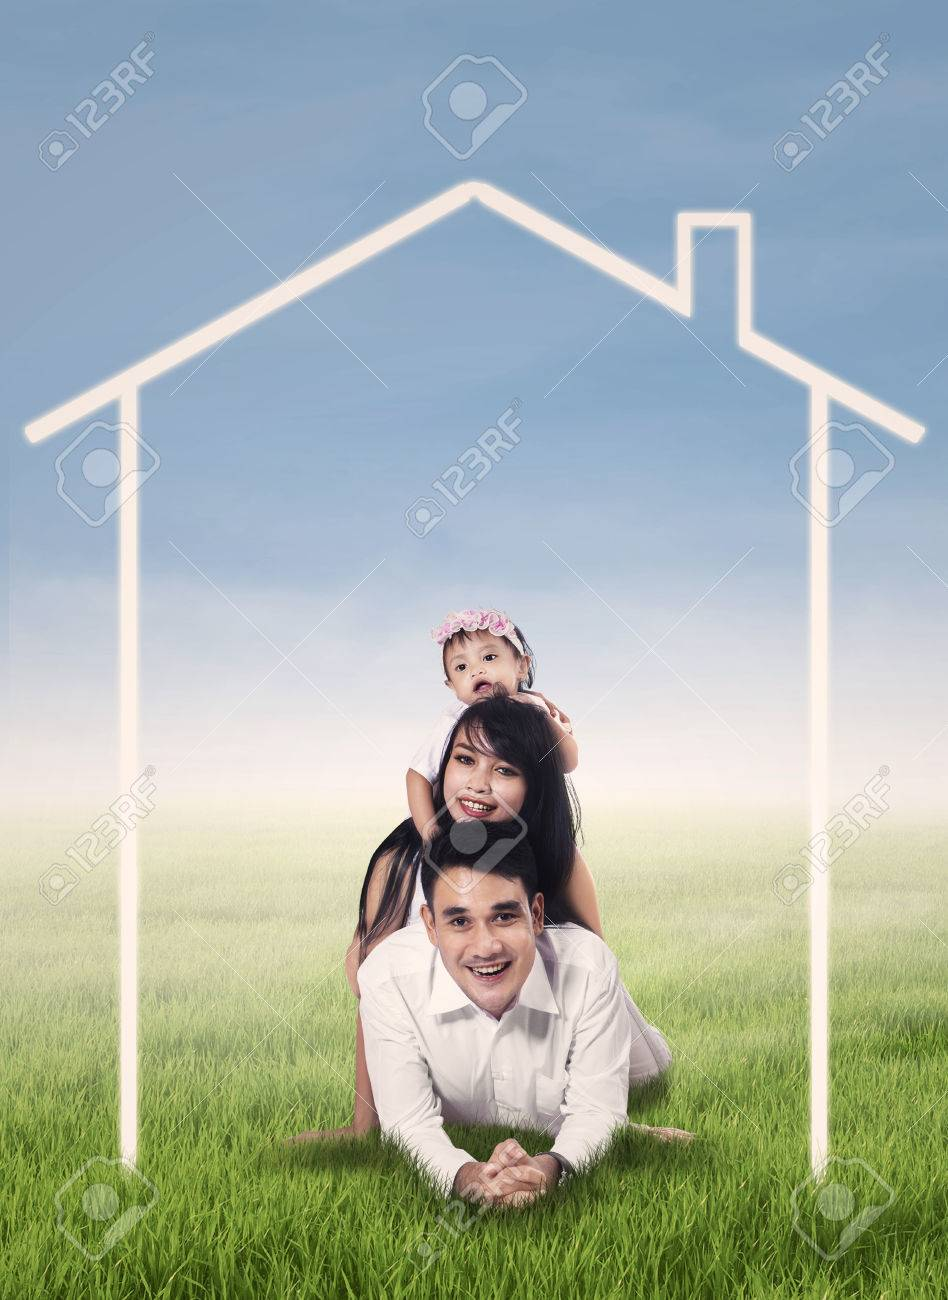 Happy Family Lying On Grass Field Surrounded By Home Drawing Stock ... for Happy Filipino Family At Home  83fiz